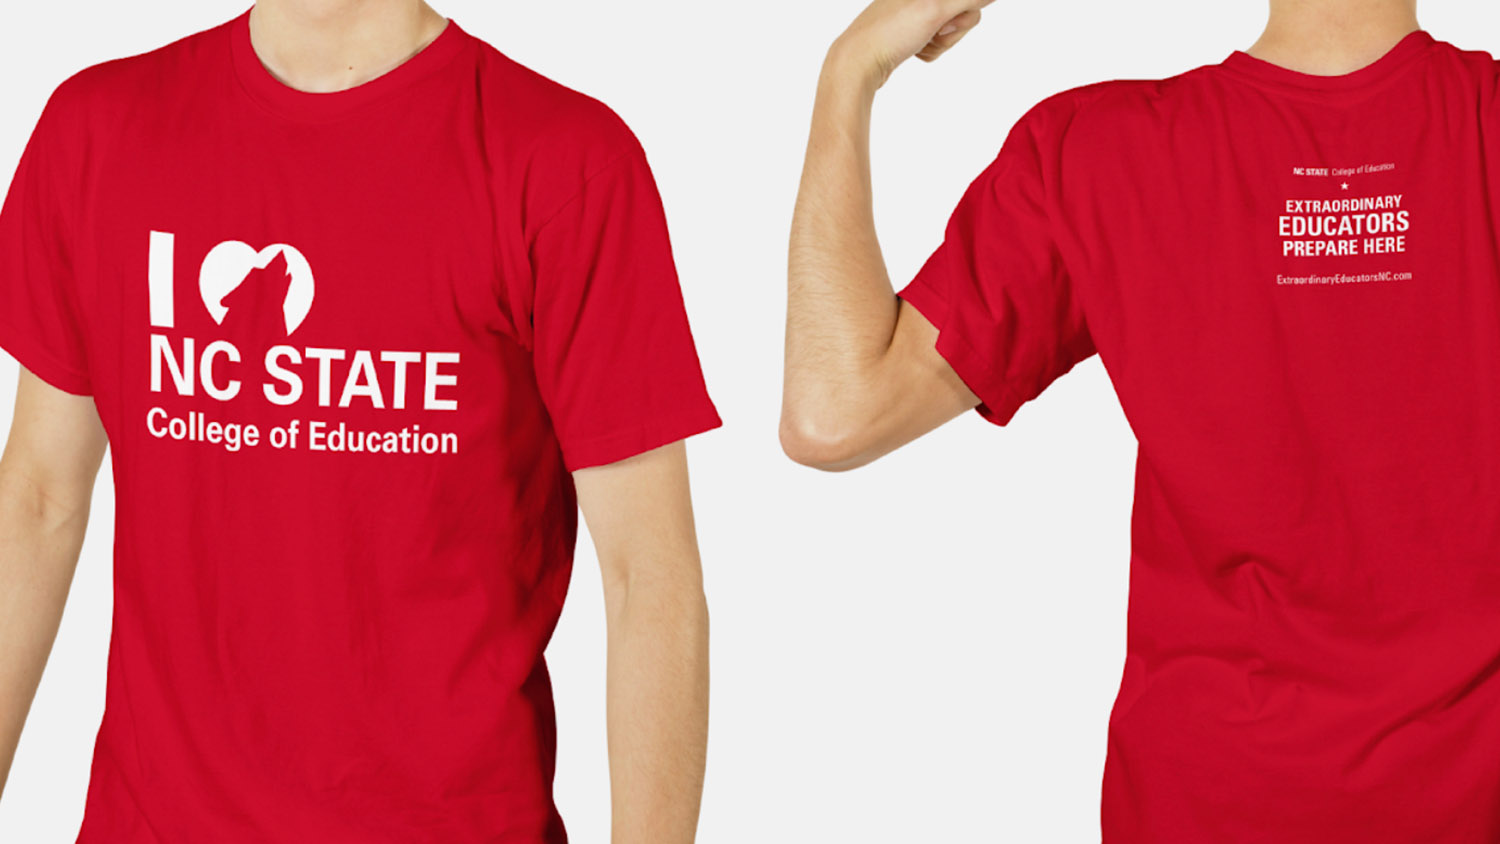 NC State College of Education T-shirt